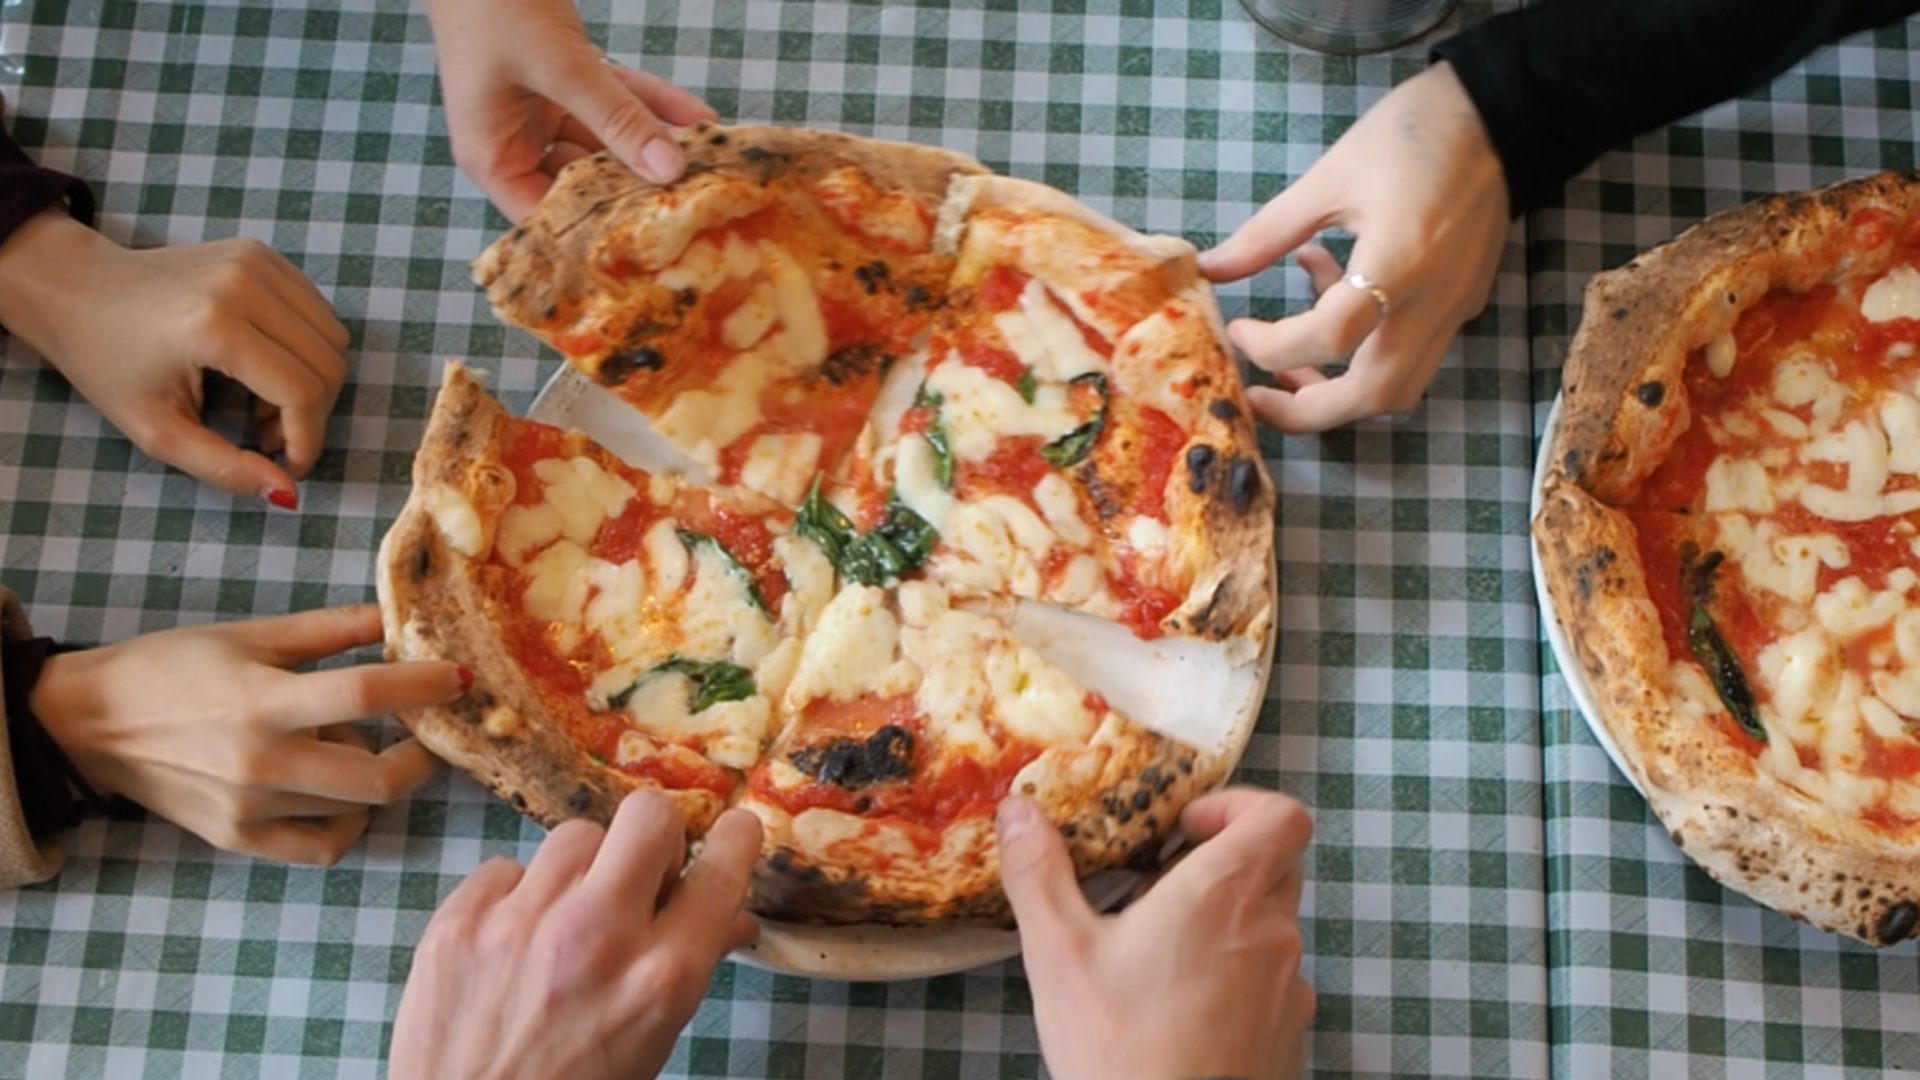 Who's up for a pizza crawl?